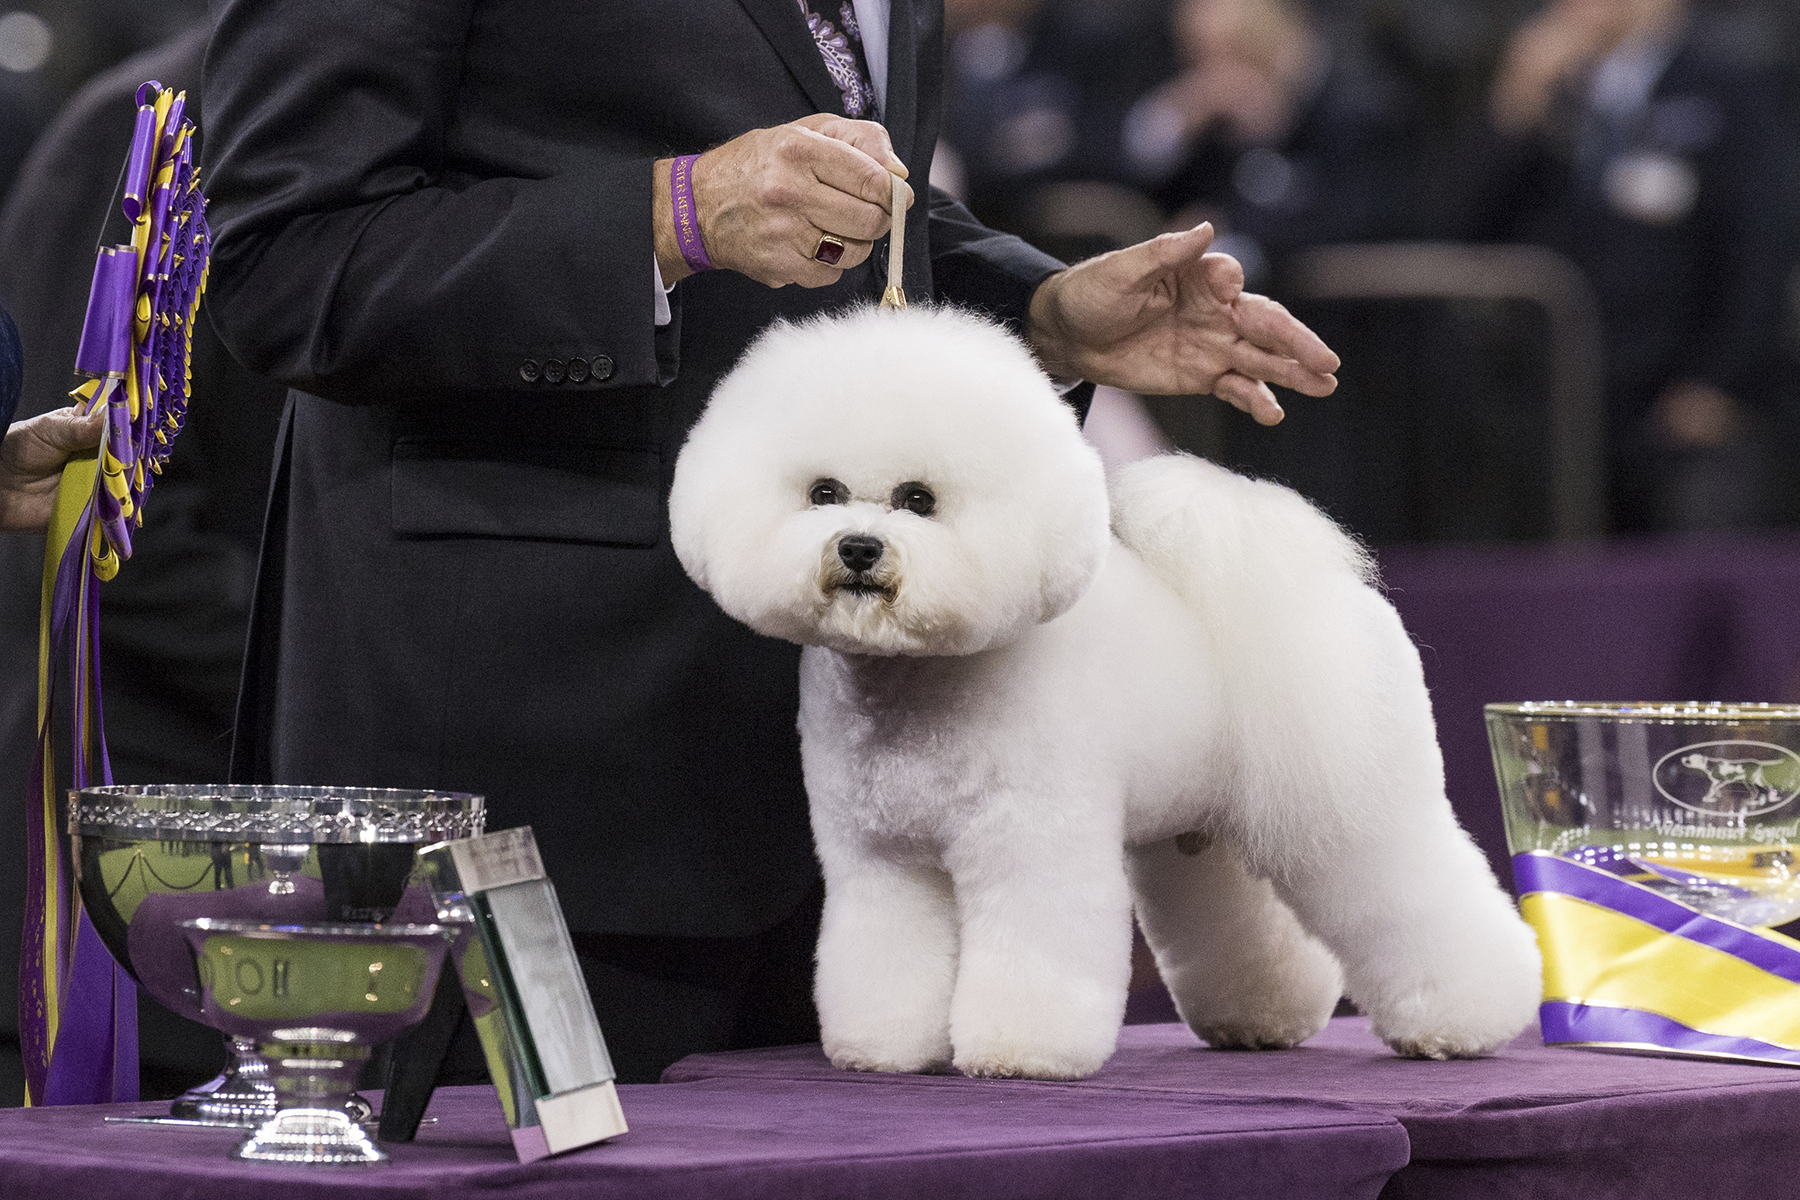 Westminster Dog Show Best in Show 2018, bichon frise on table with handler